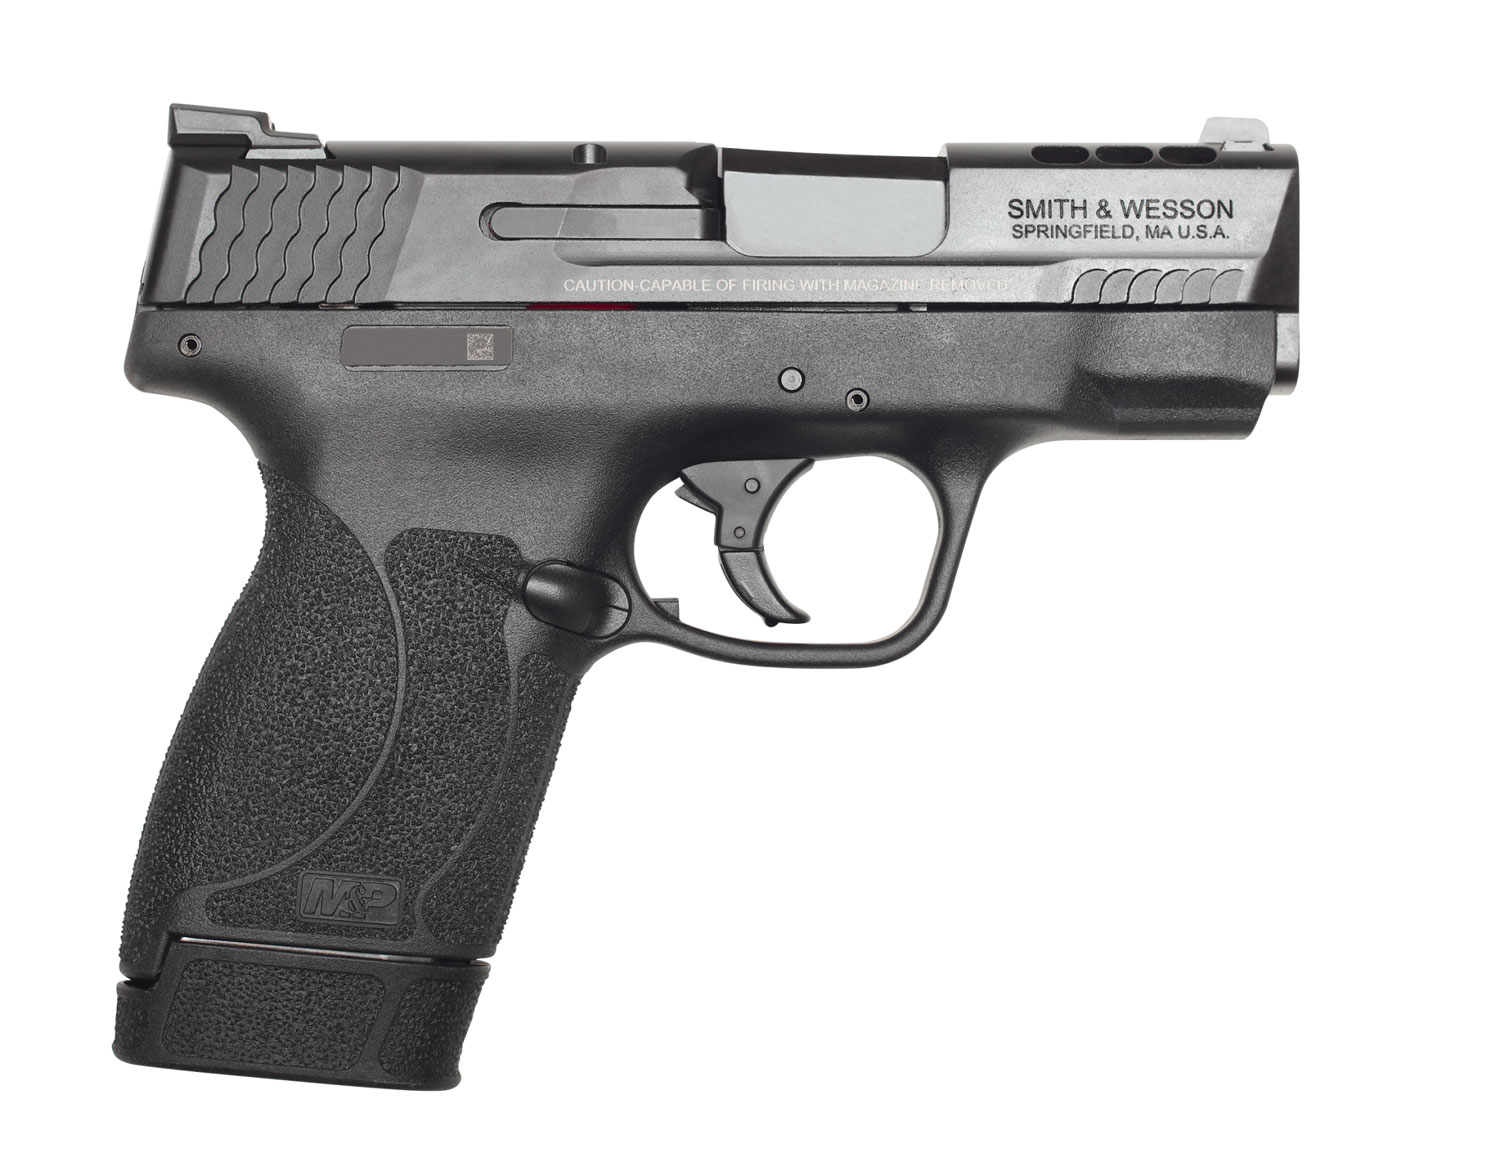 Smith & Wesson 12474 M&P Performance Center M2.0  45 ACP Double 3.3